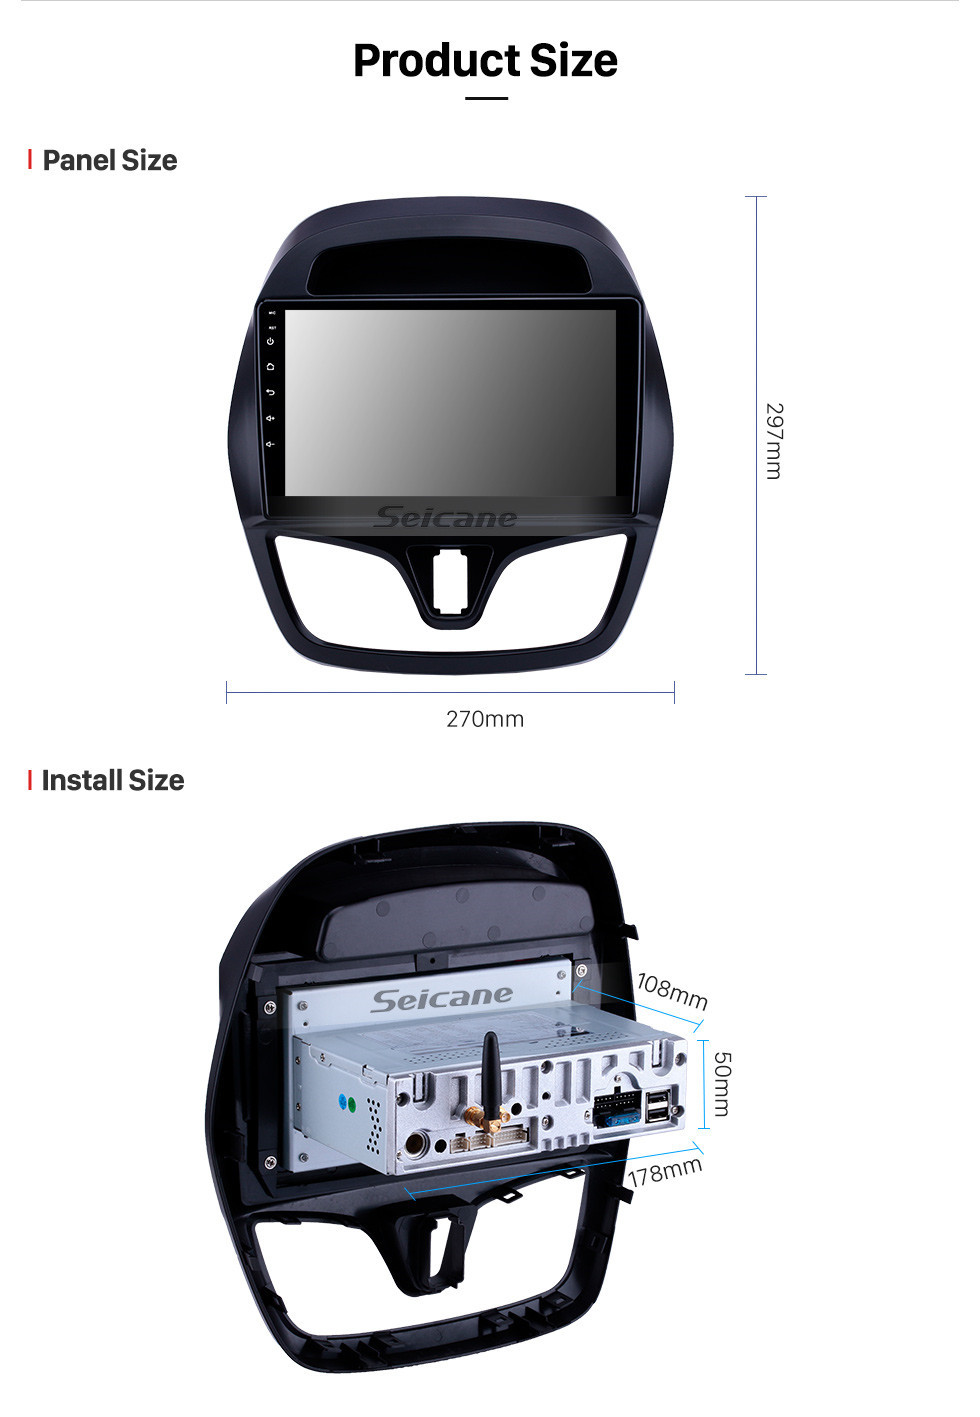 Seicane 2015-2018 chevy Chevrolet Spark Beat Daewoo Martiz Android 10.0 9 inch GPS Navigation Radio Bluetooth Touchscreen Carplay support TPMS 1080P